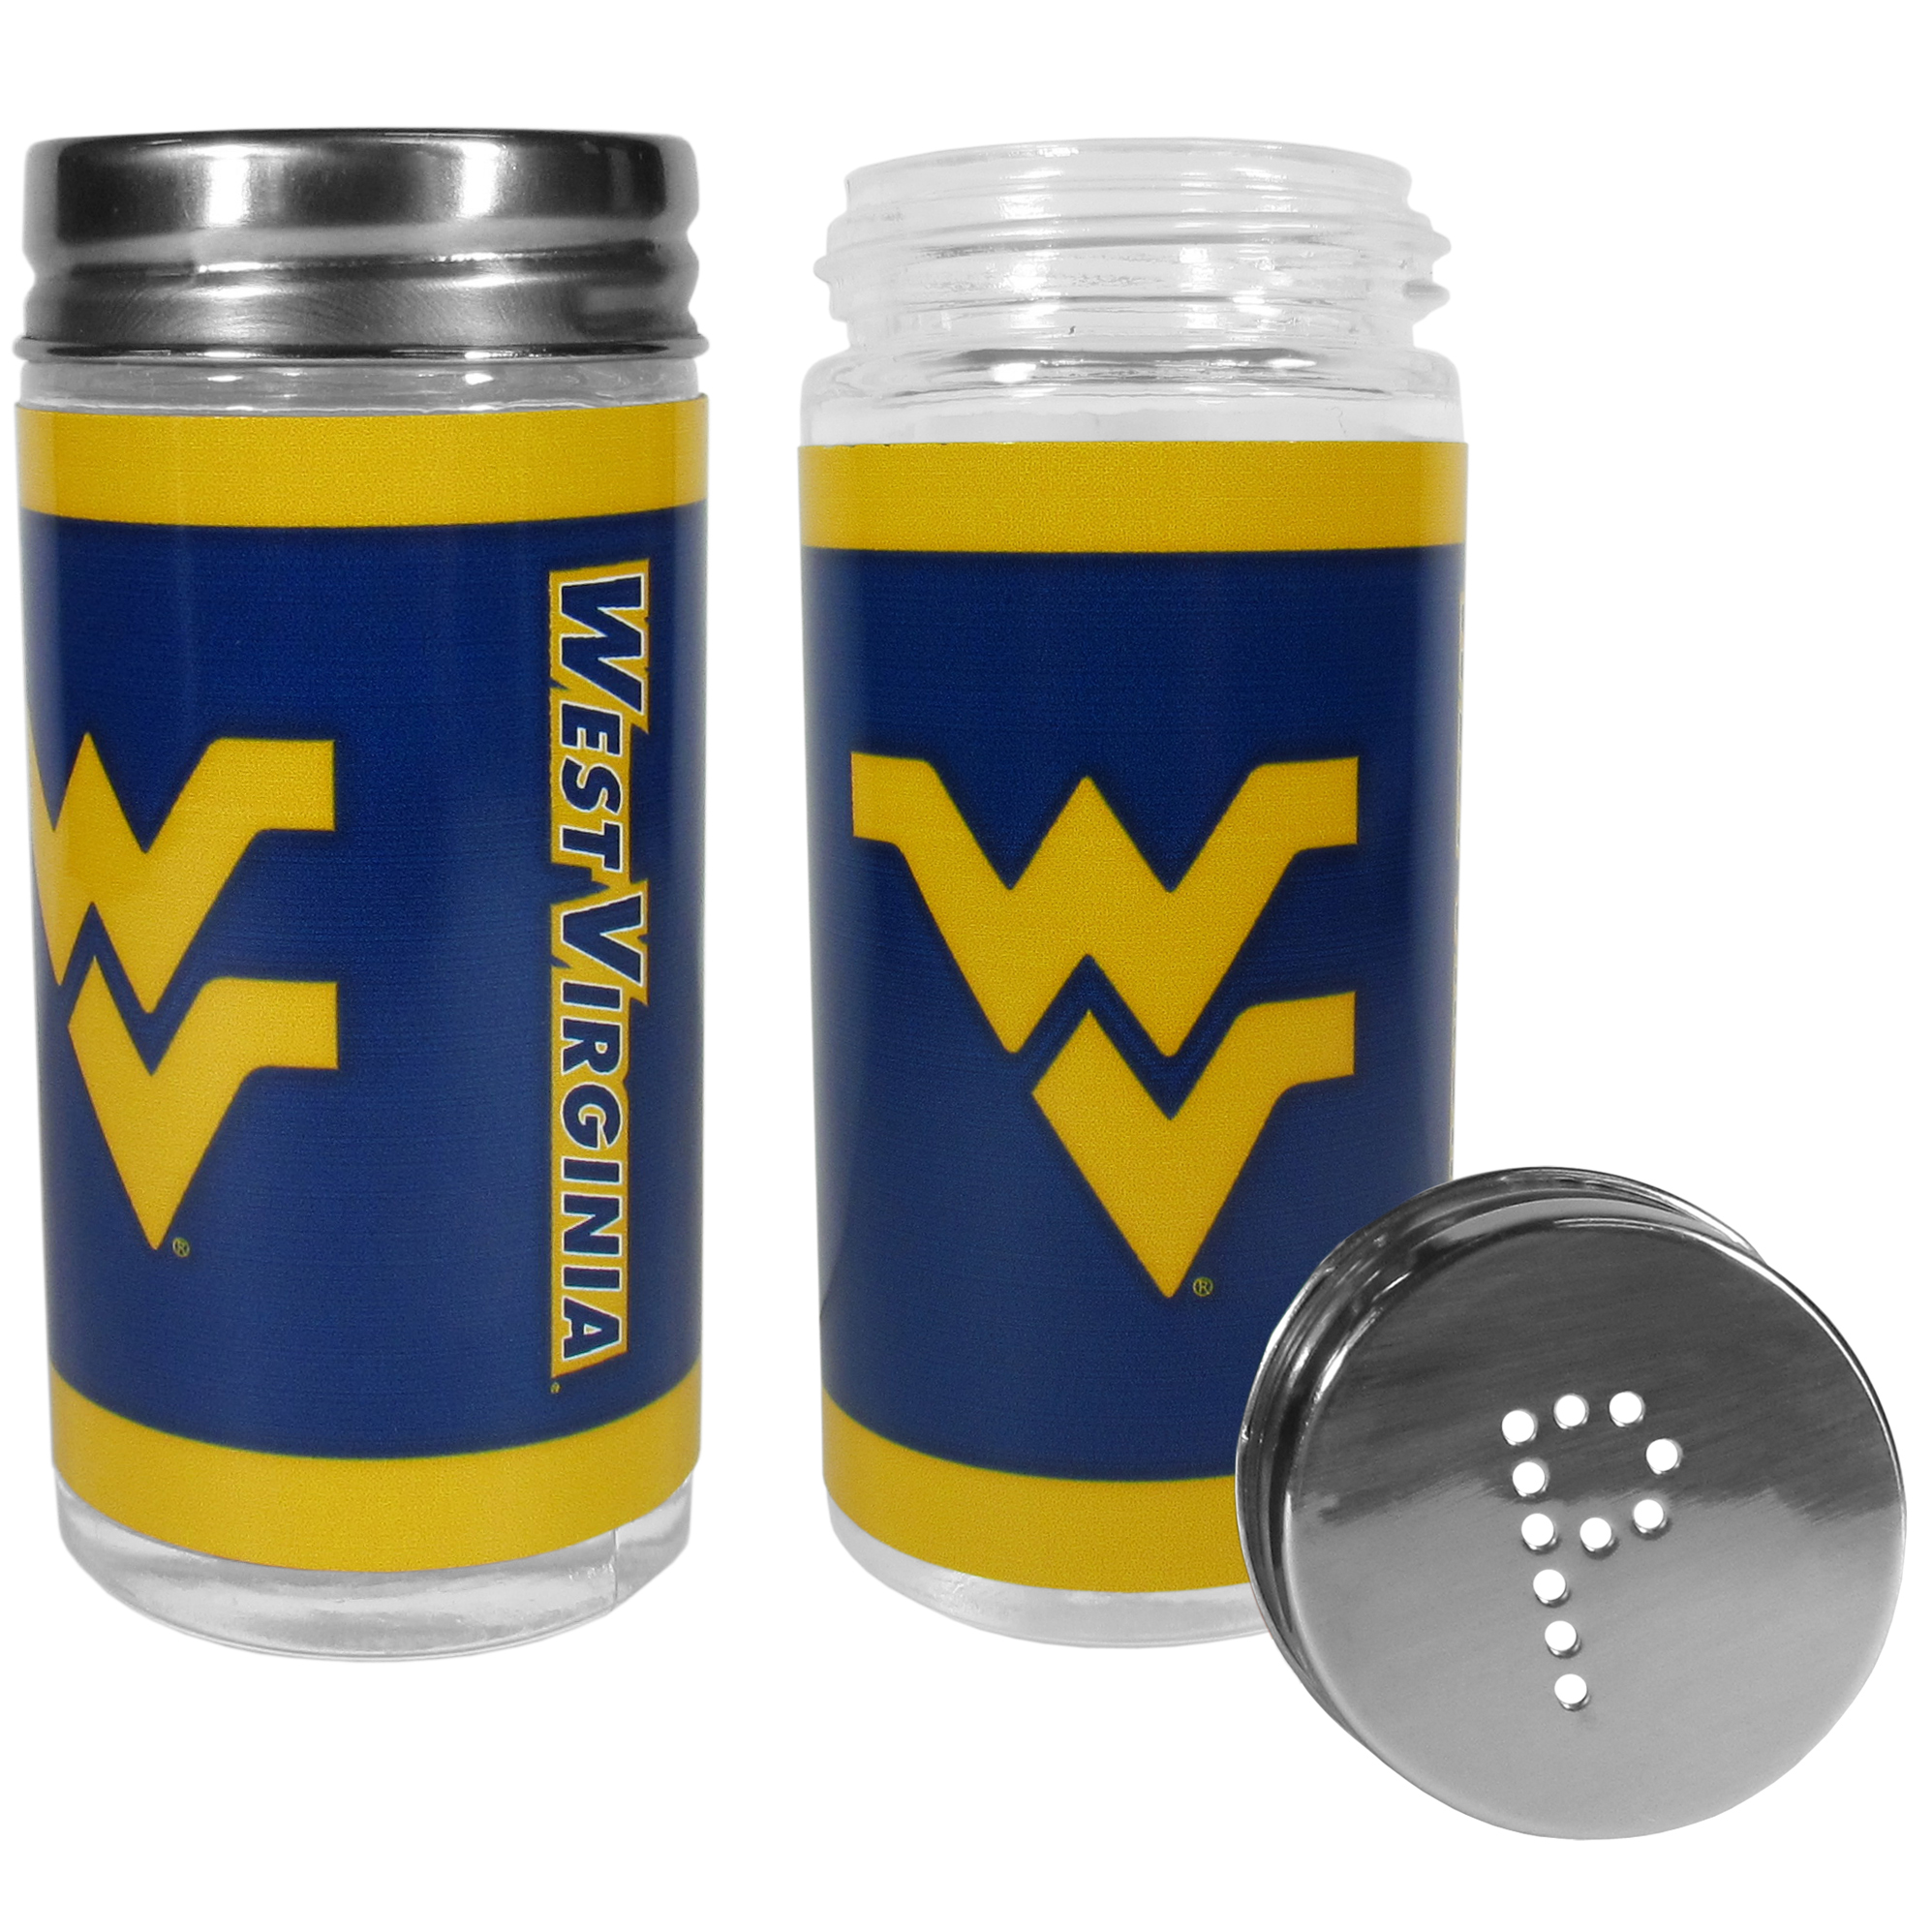 W. Virginia Mountaineers Tailgater Salt & Pepper Shakers - No tailgate party is complete without your W. Virginia Mountaineers salt & pepper shakers featuring bright team graphics. The glass shakers are 3.75 inches tall and the screw top lids have holes that spell out P and S. These team shakers are a great grill accessory whether you are barbecuing on the patio, picnicing or having a game day party.